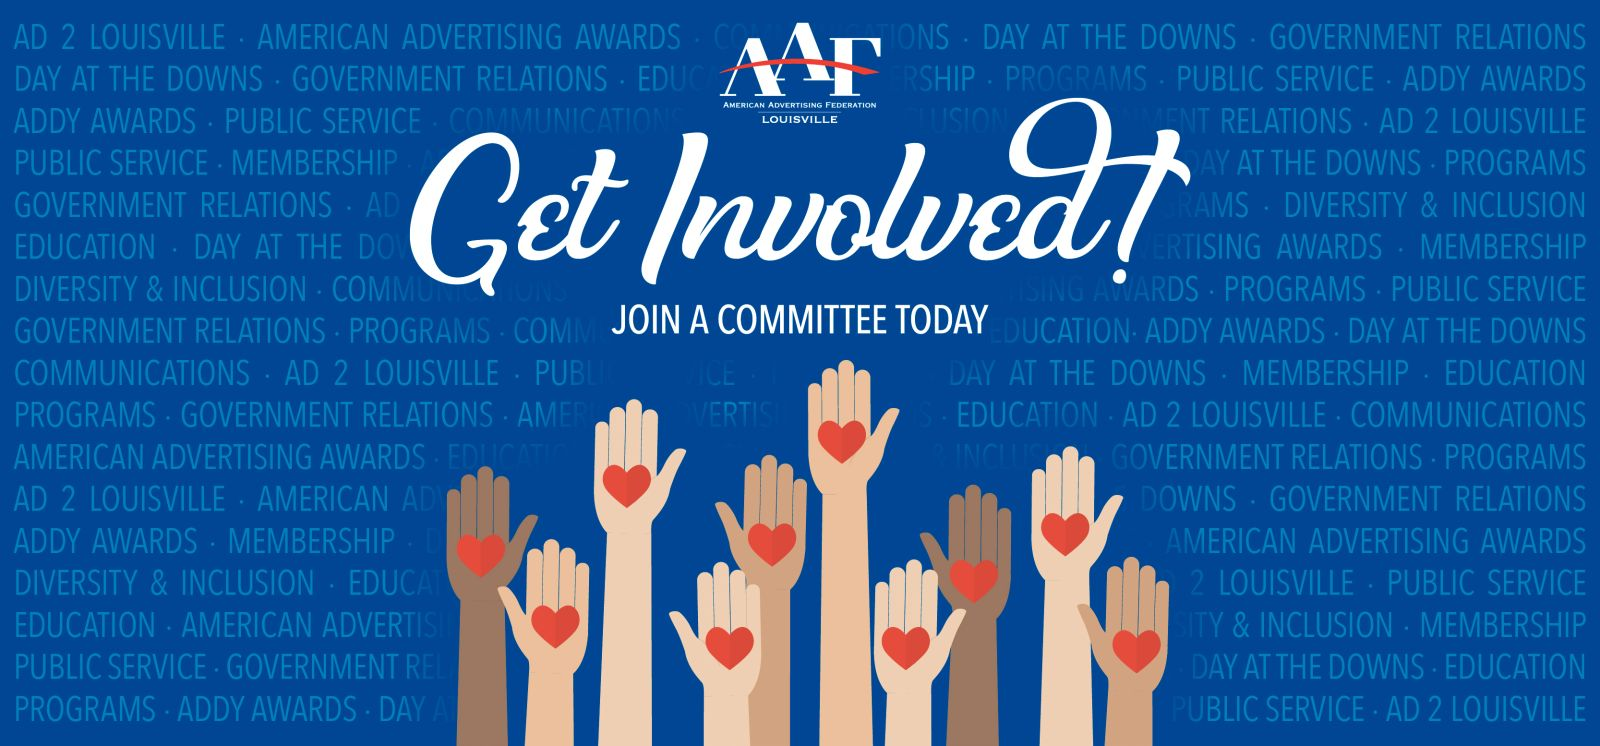 Get Involved! Join a Committee Today